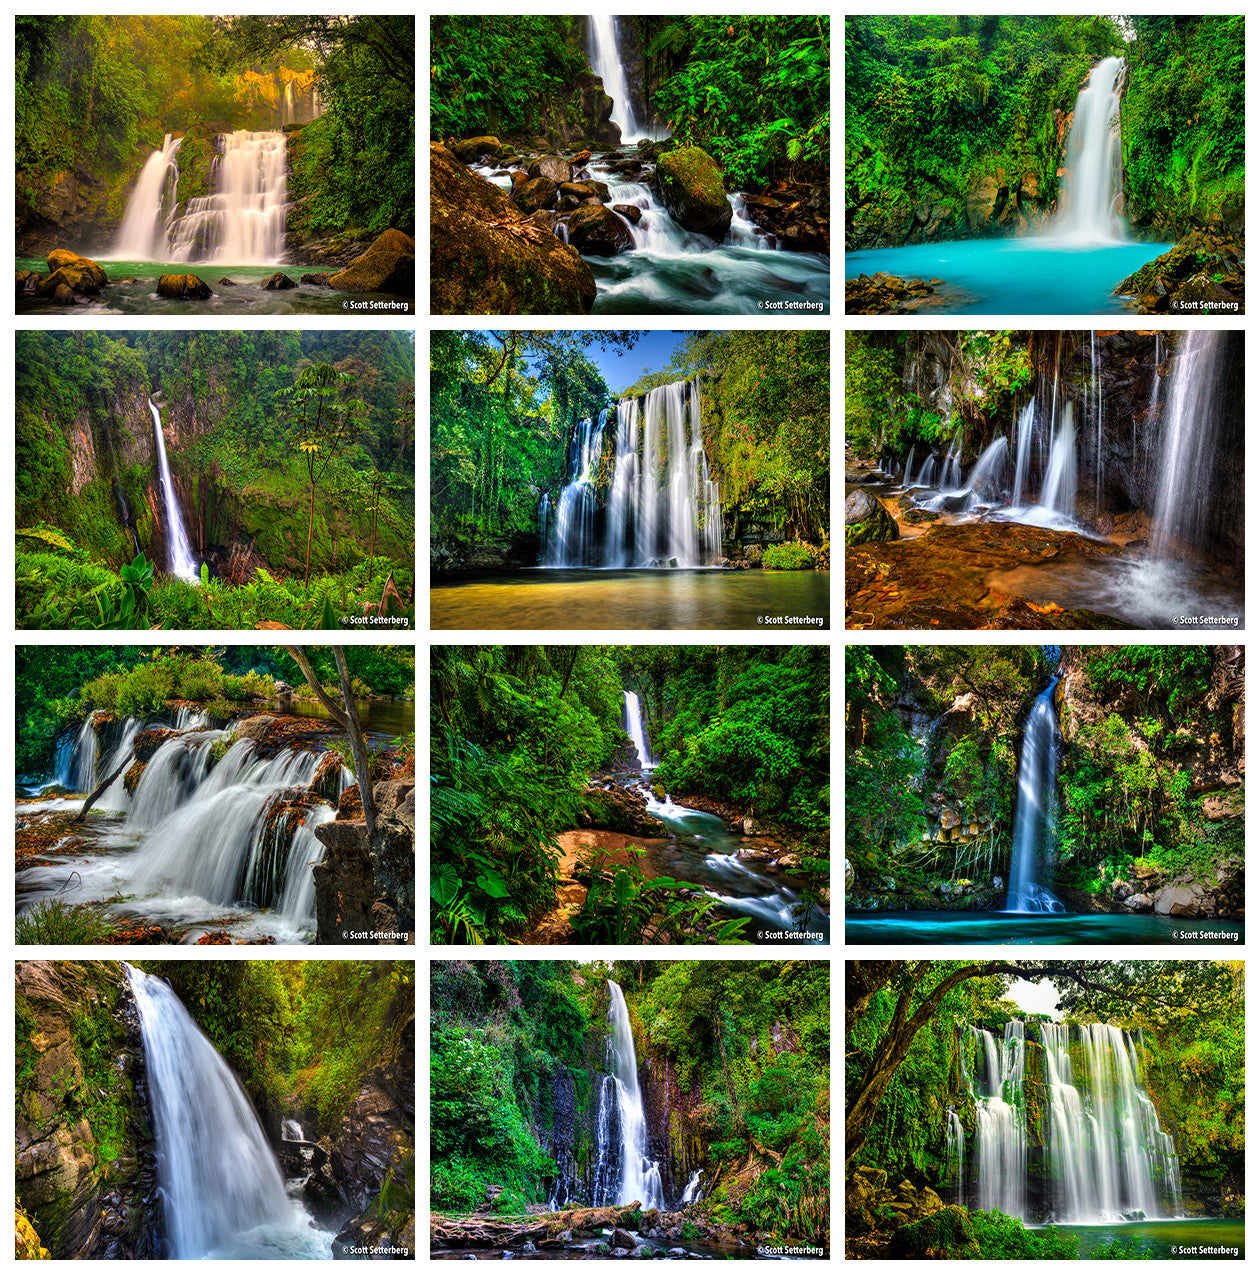 Tropical Waterfalls Photo Tour Grid